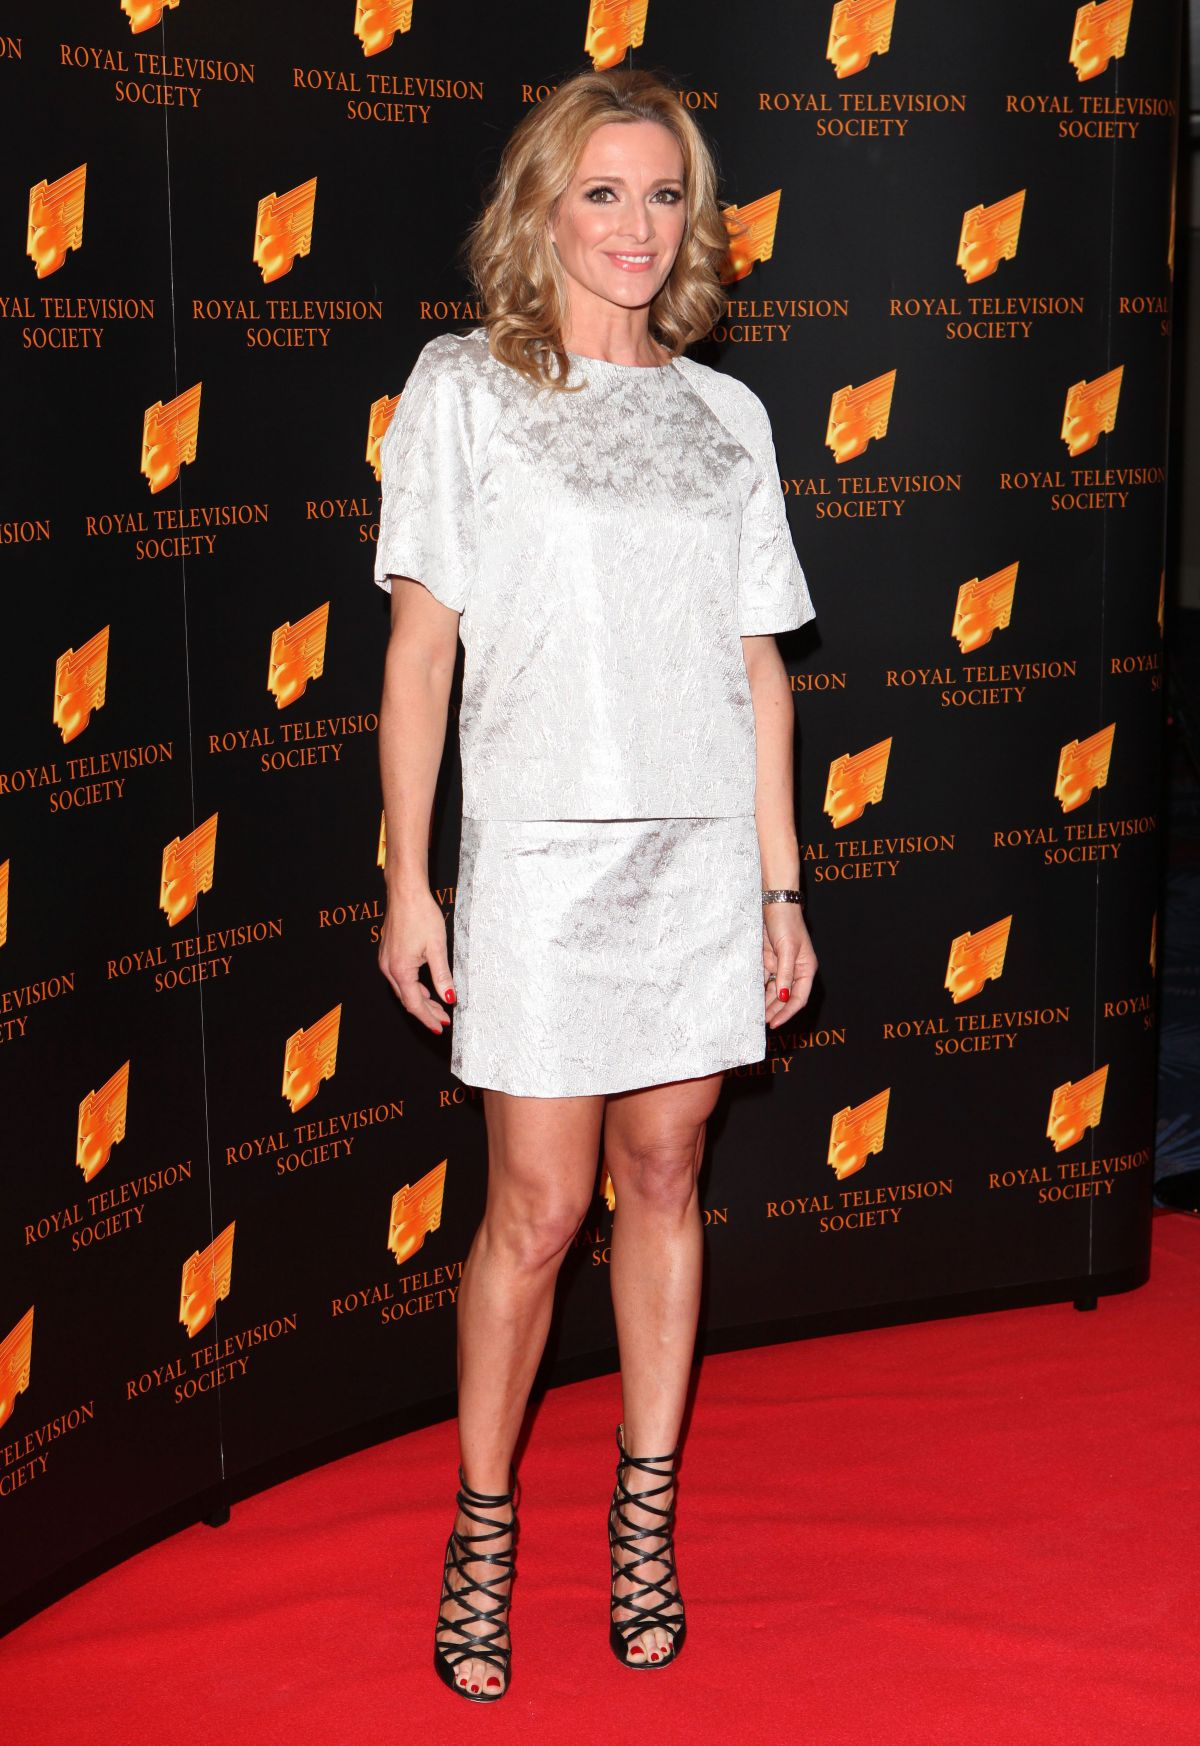 gabby logan at rts programme awards in london   celebzz